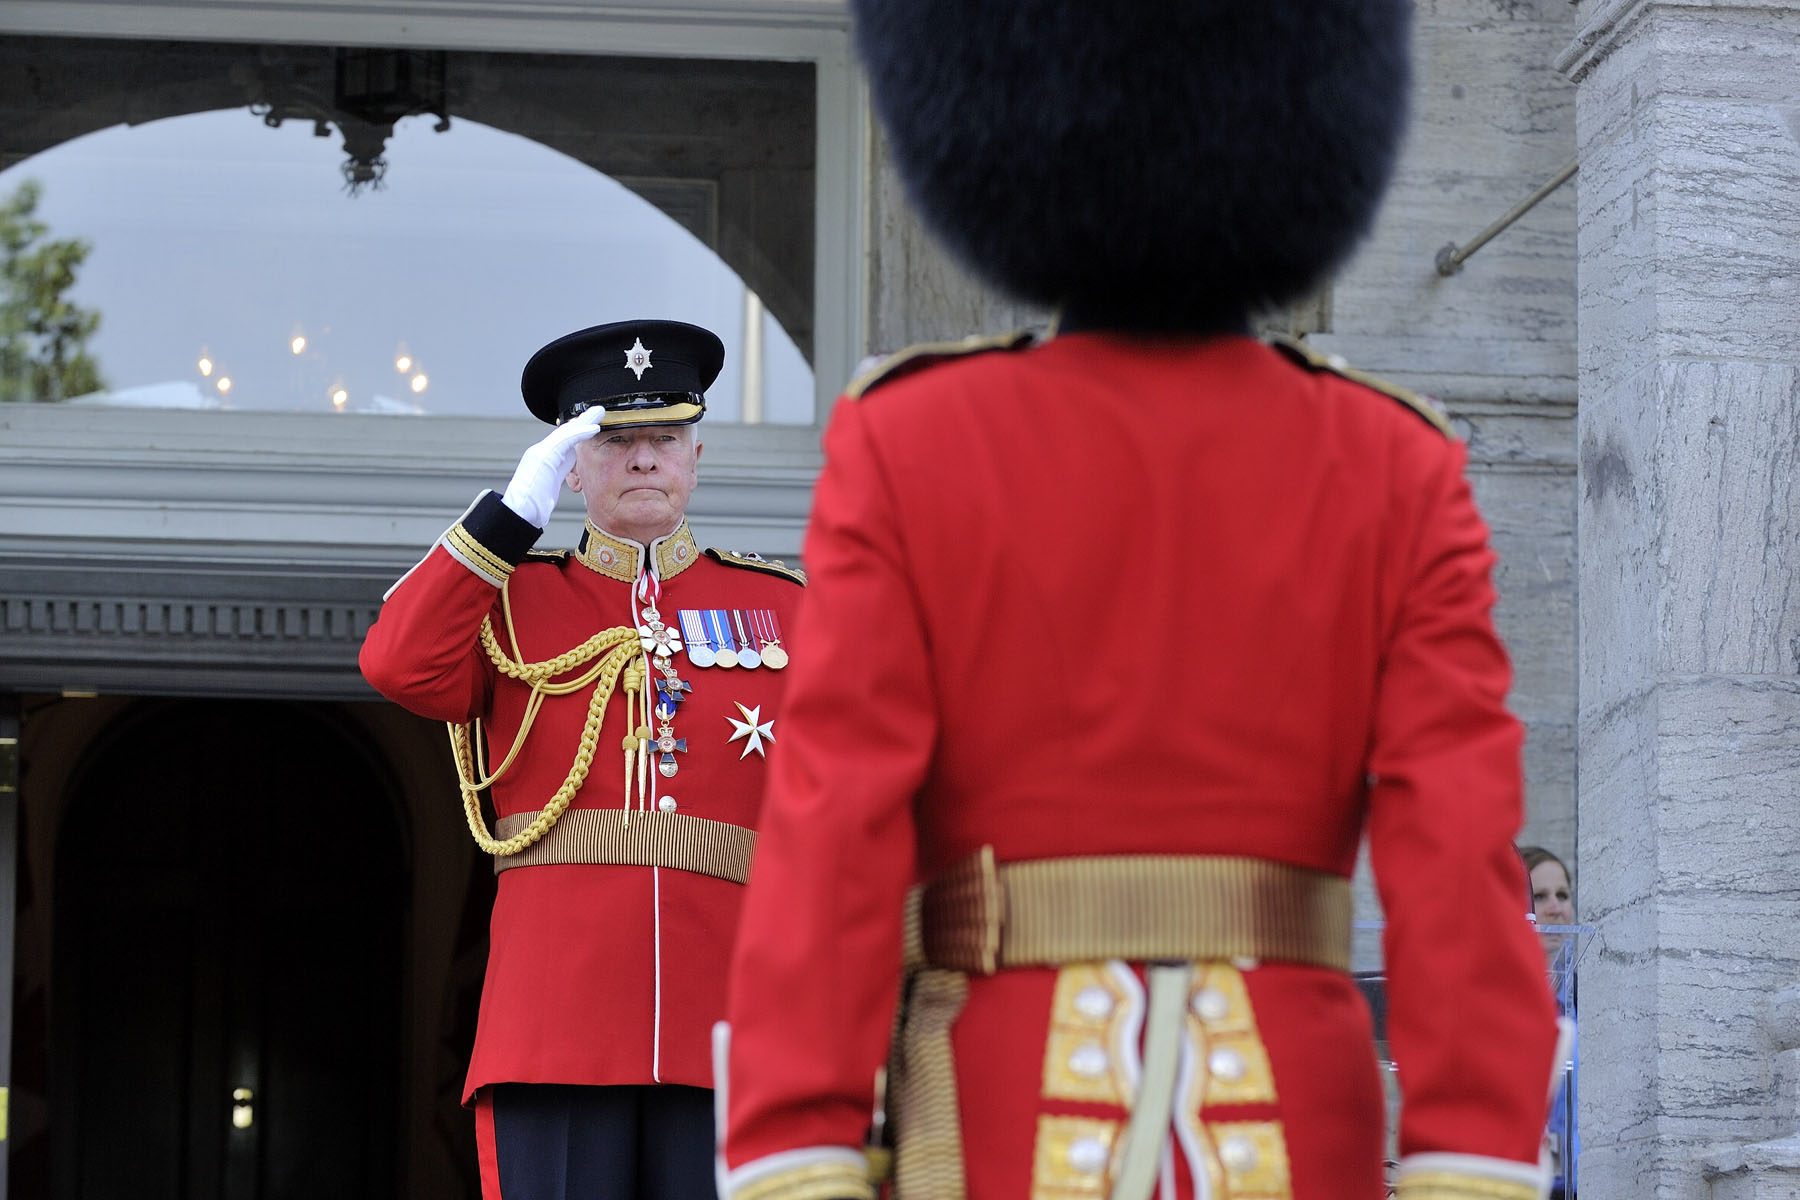 Visitors were able to witness the pageantry, precision and colour of the Ceremonial Guard.